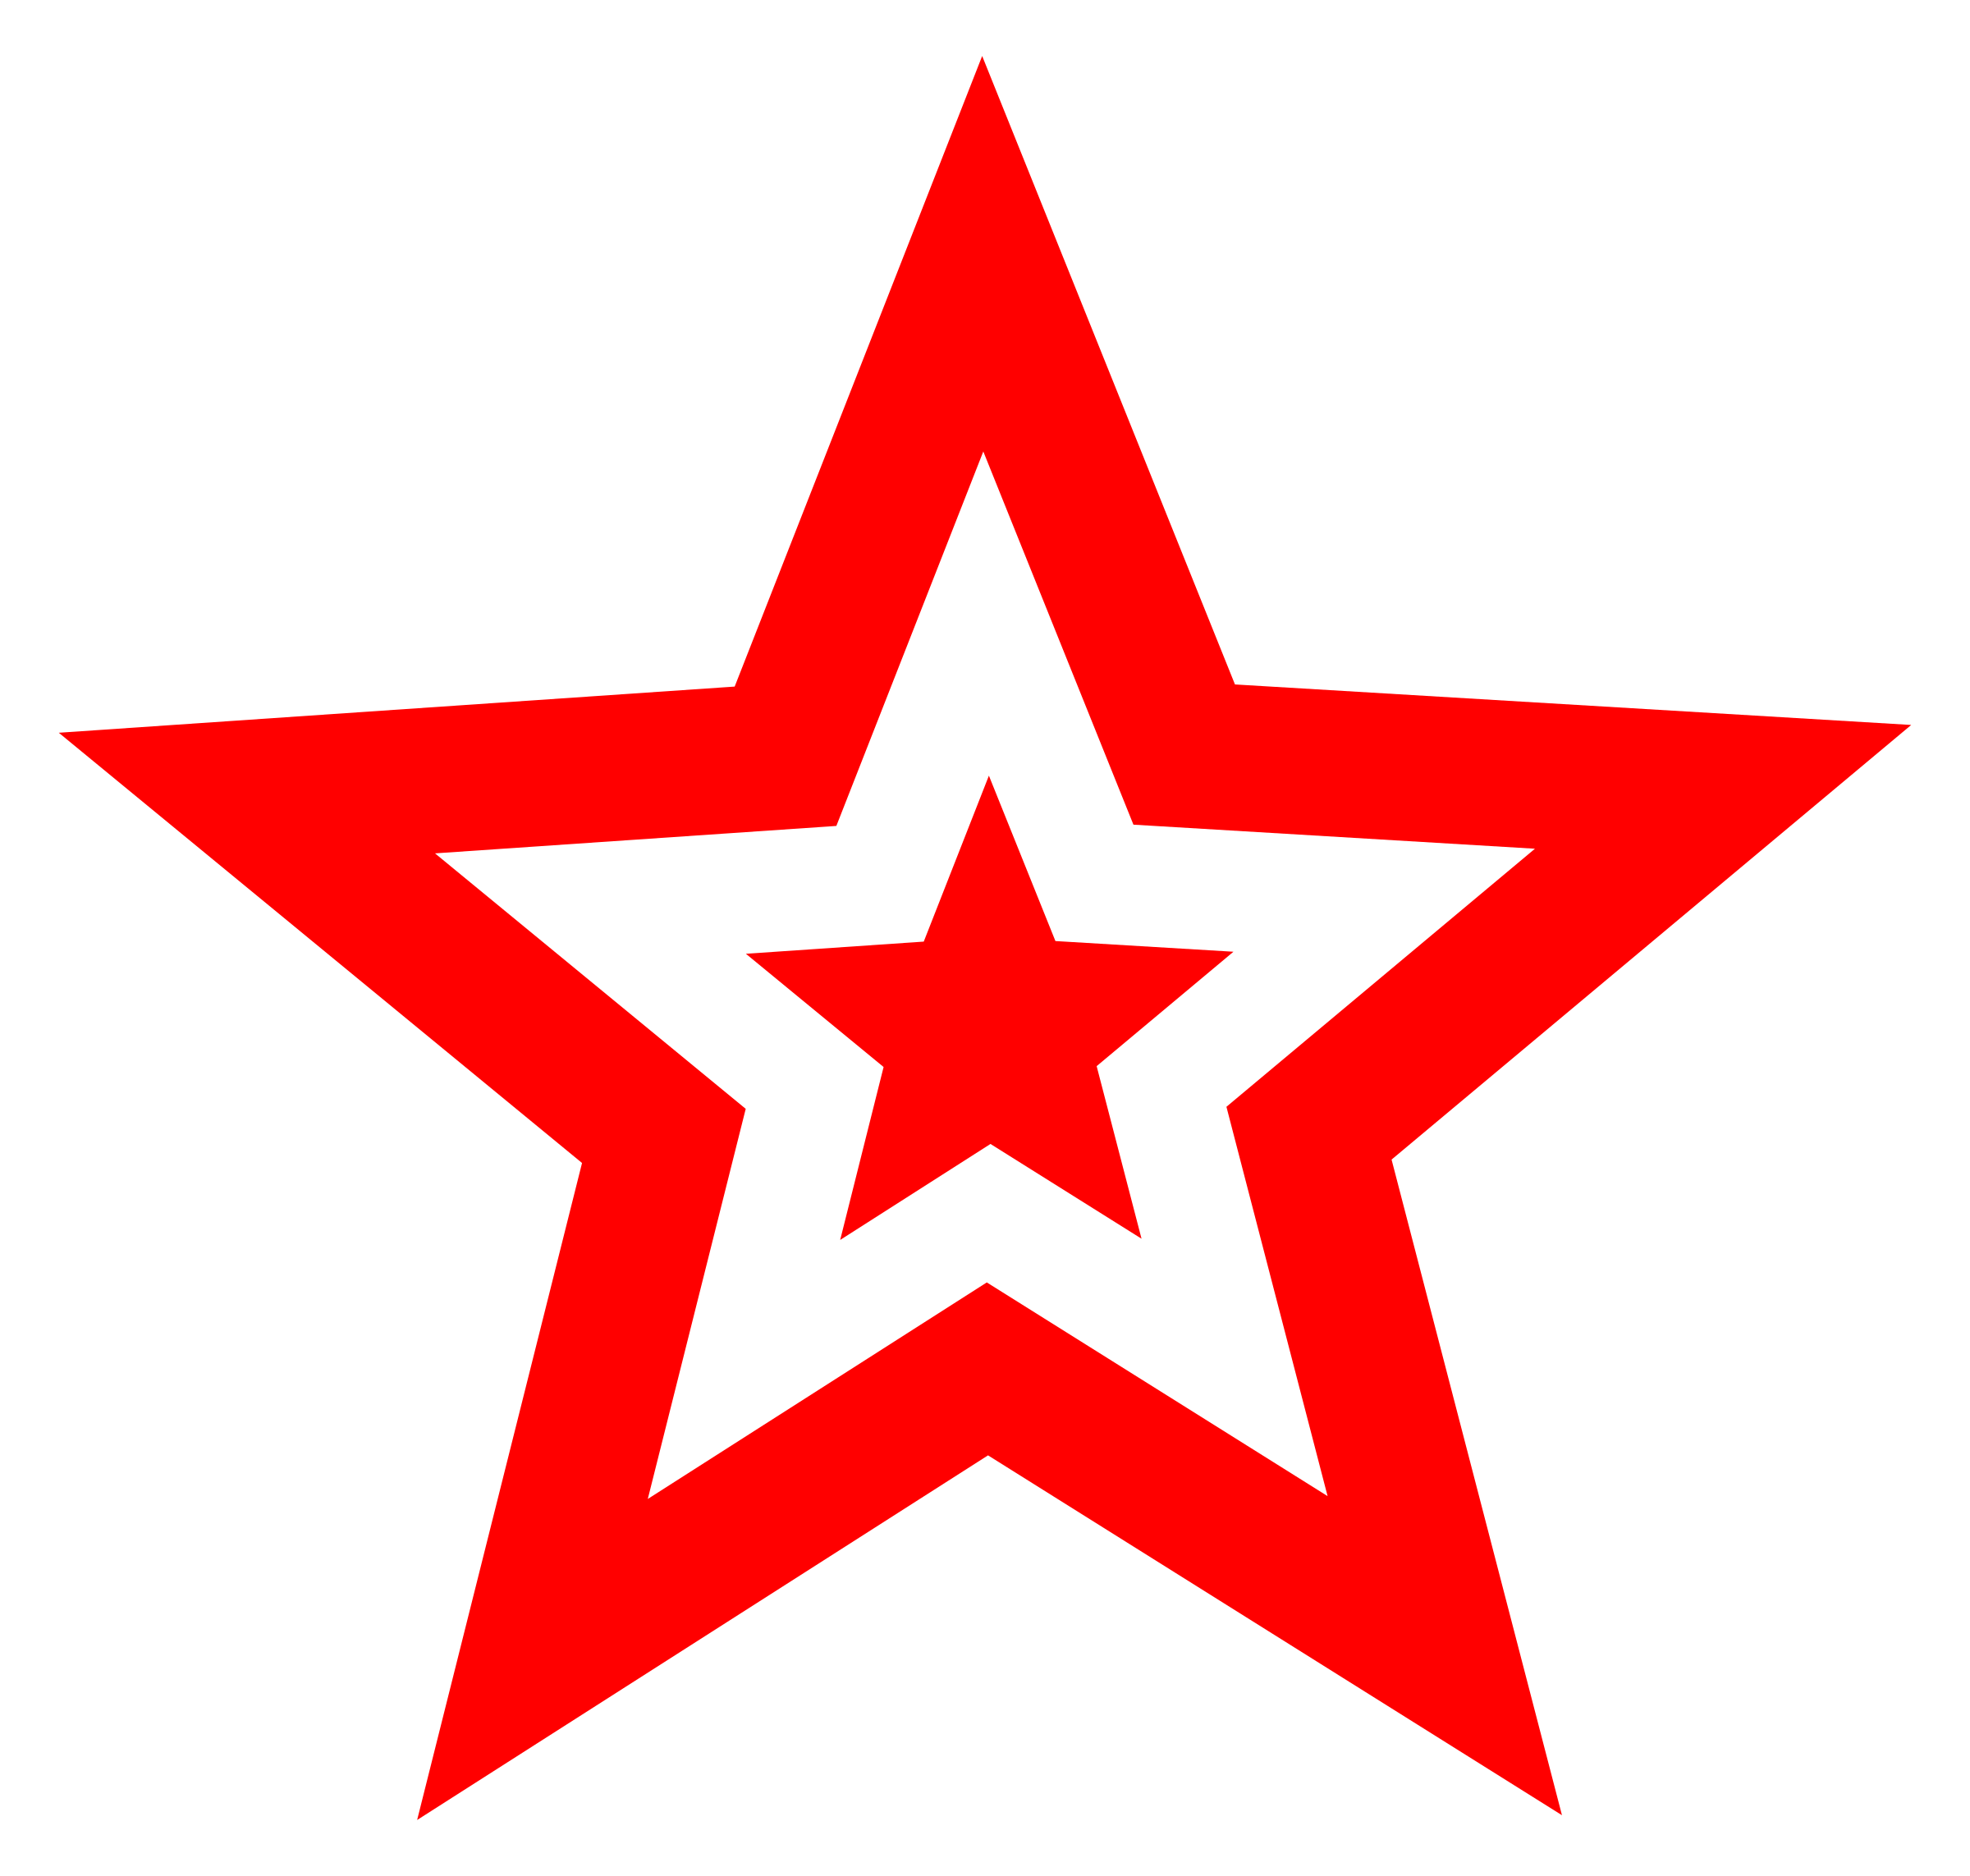 Red stars png. Star in icons free